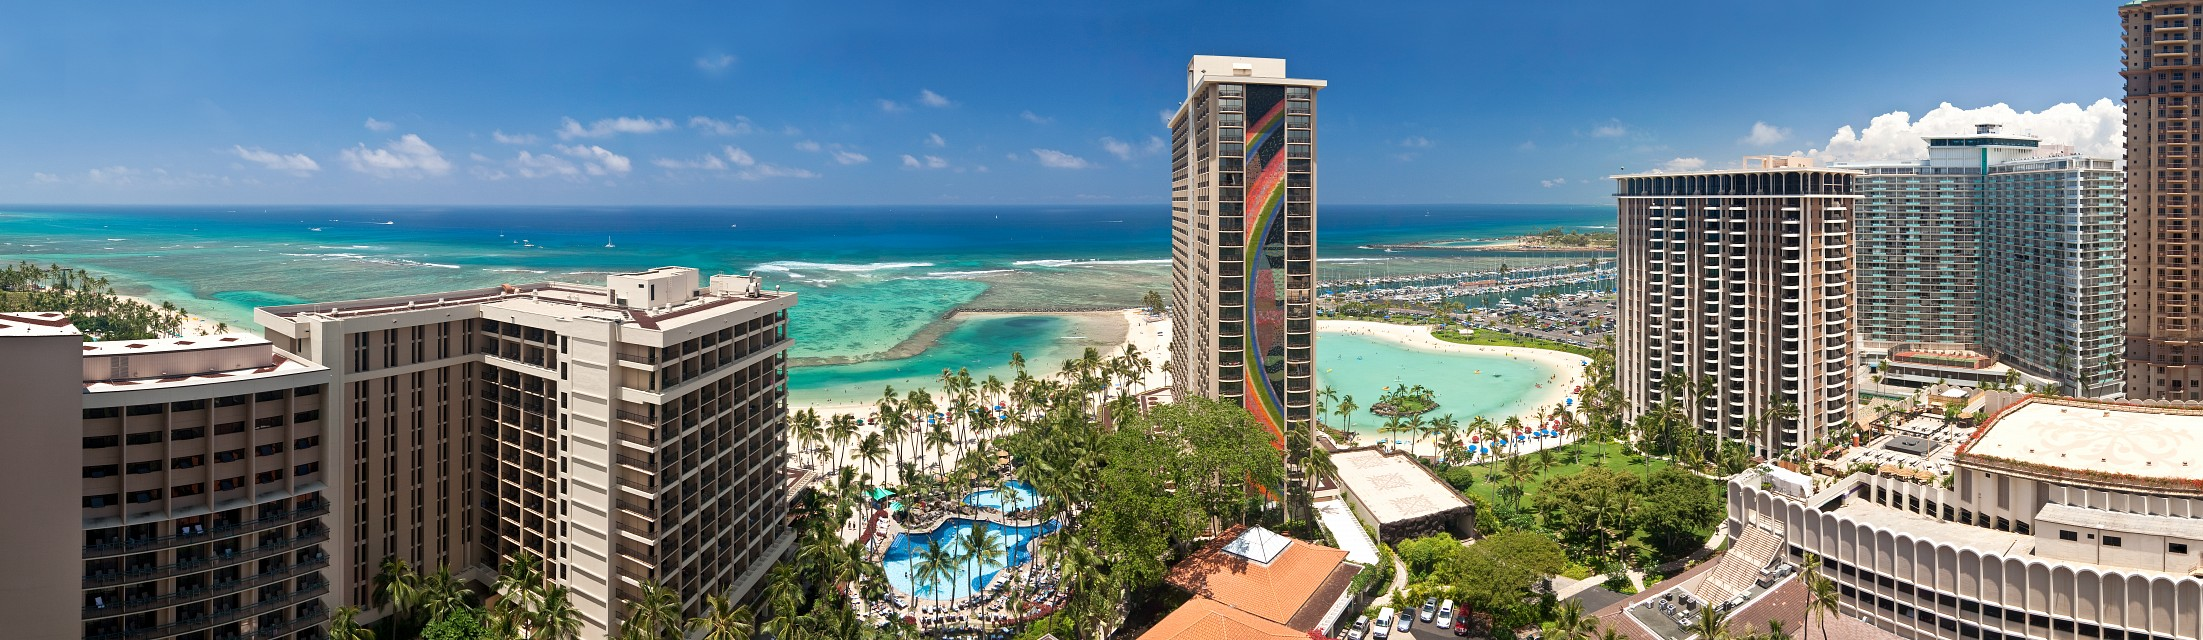 Hilton Hawaiian Village - Waikiki, Hawaii - Honolulu